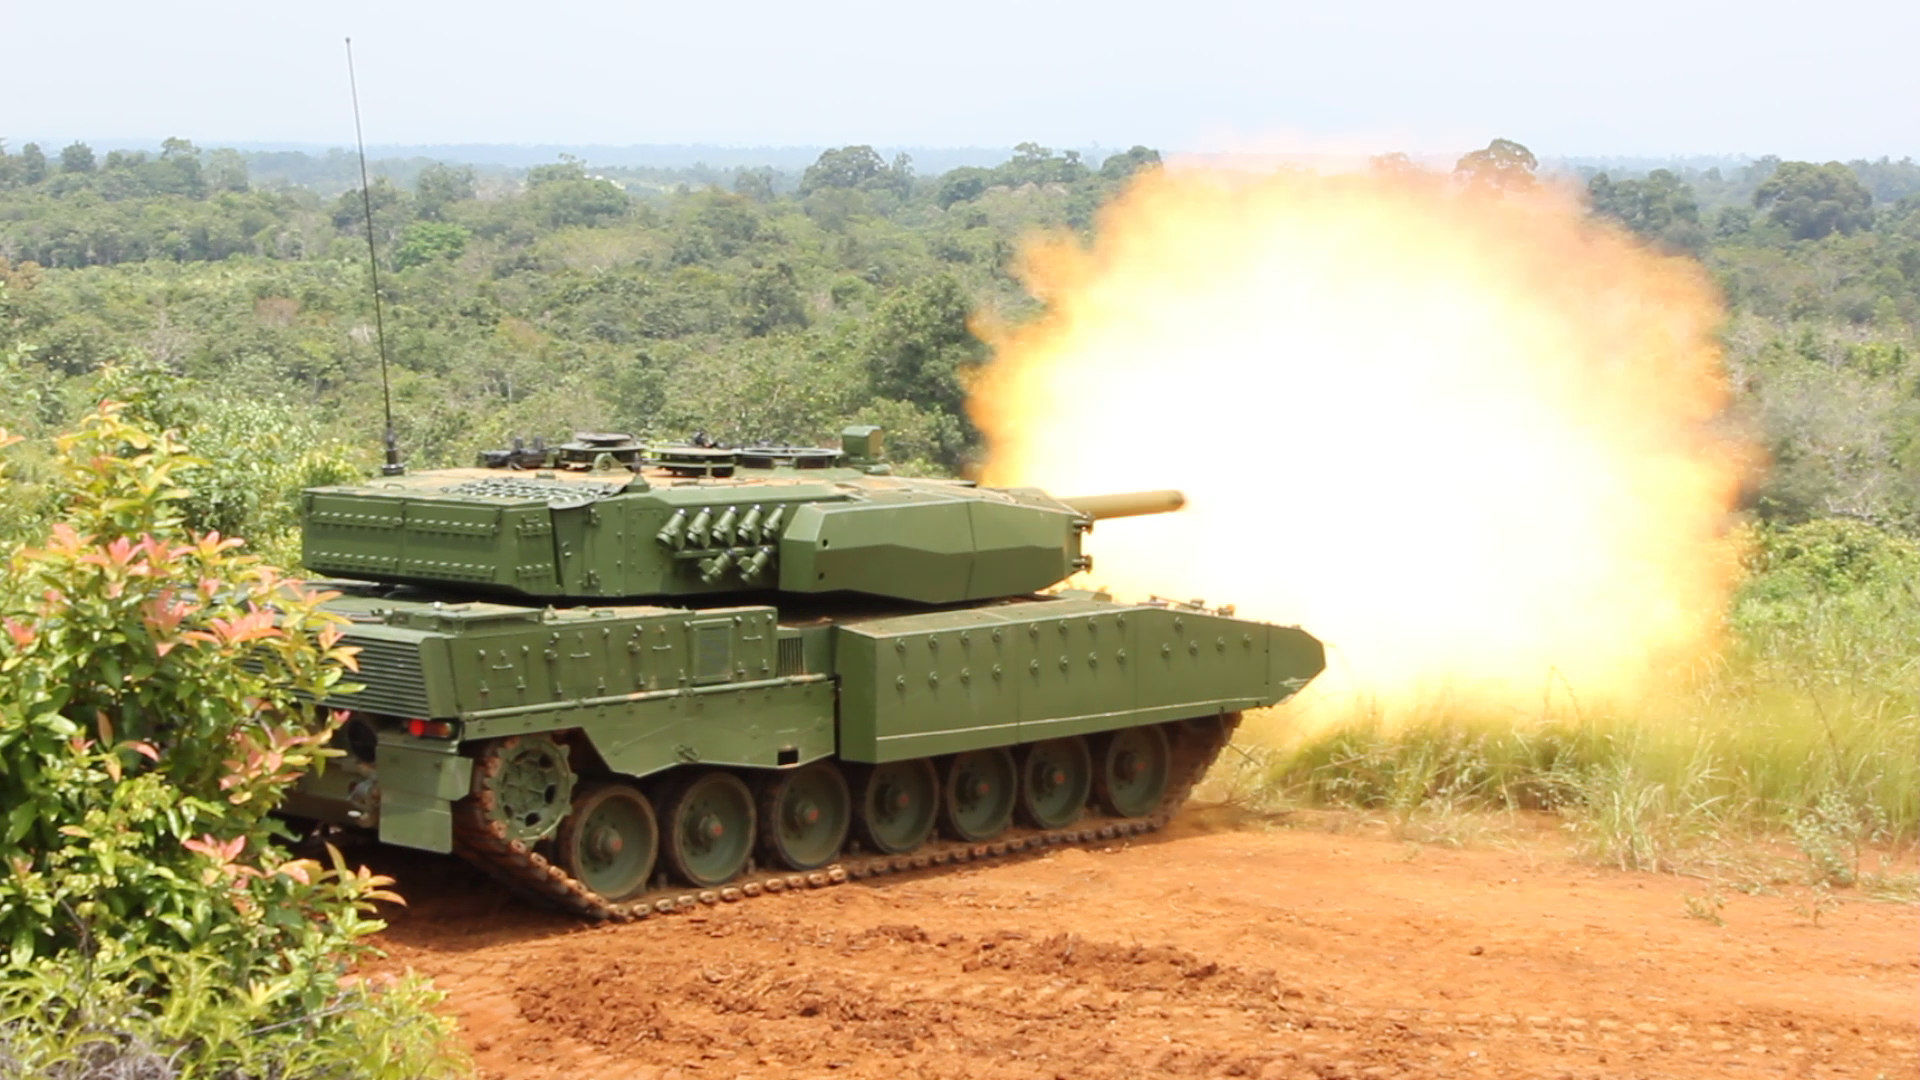 022fd5e86913 Indonesia s fielding of the modernised Leopard-2 RI (shown firing) gives it  an advanced MBT force that is further complemented by its acquisition of  surplus ...